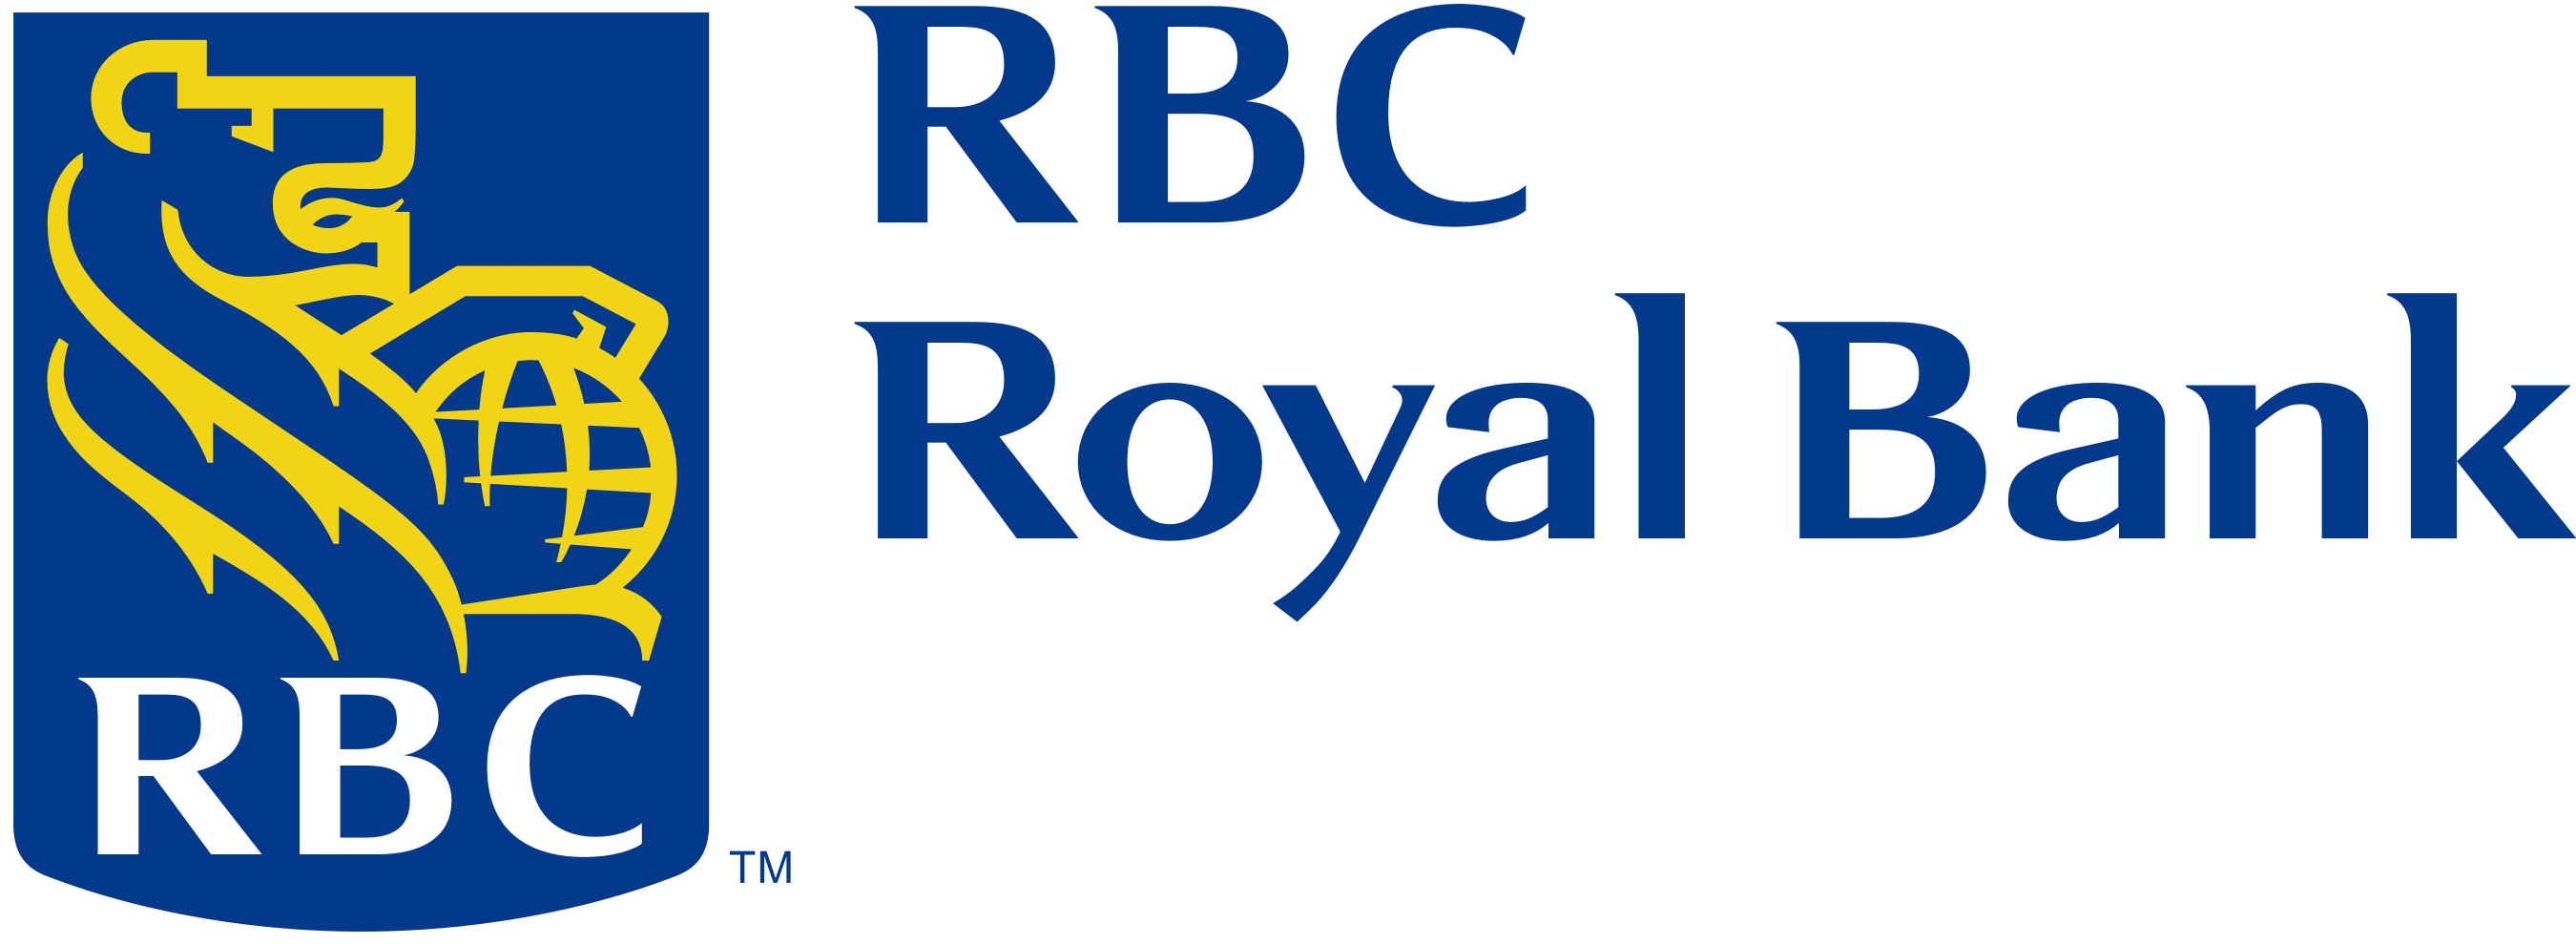 RONALD WEDERFOORT AIIB 800 GOLD BACKED ACCOUNT STATUS from the RBC Branch in Curacao. 5fbb2b_bd117f5fc0b248a7a86b0dd3d359a368~mv2